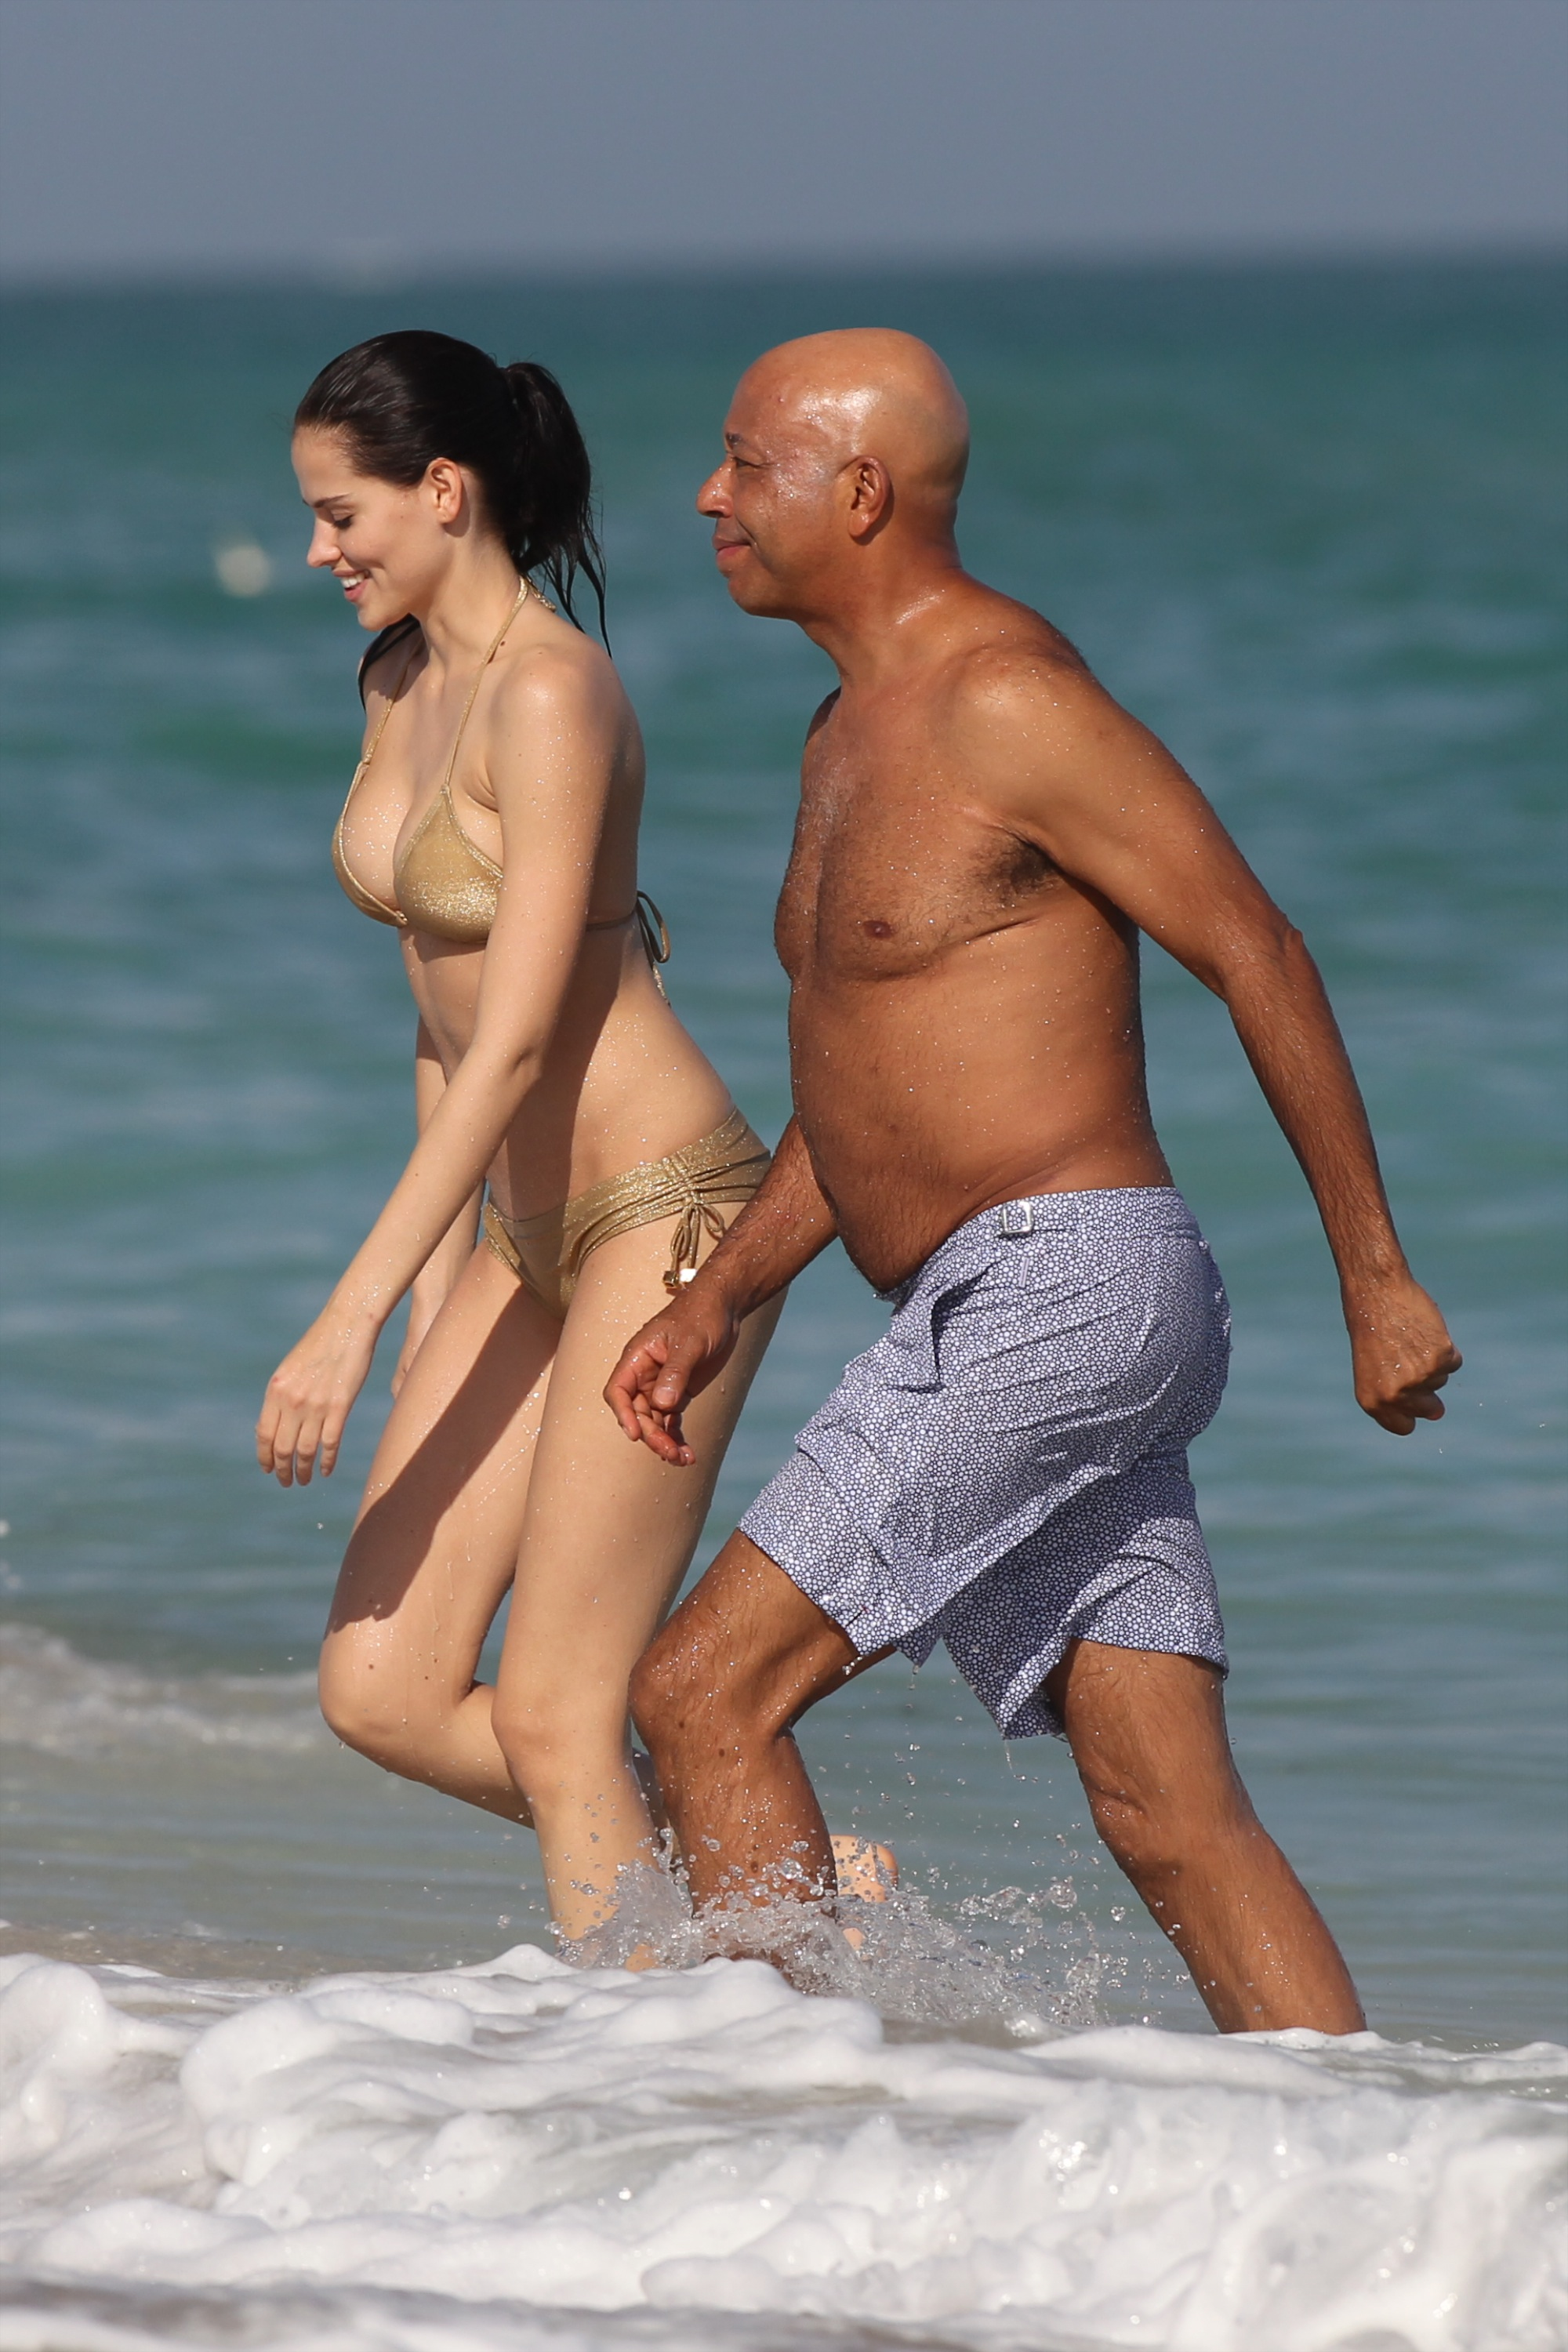 Russell Simmons i Hana Nitsche